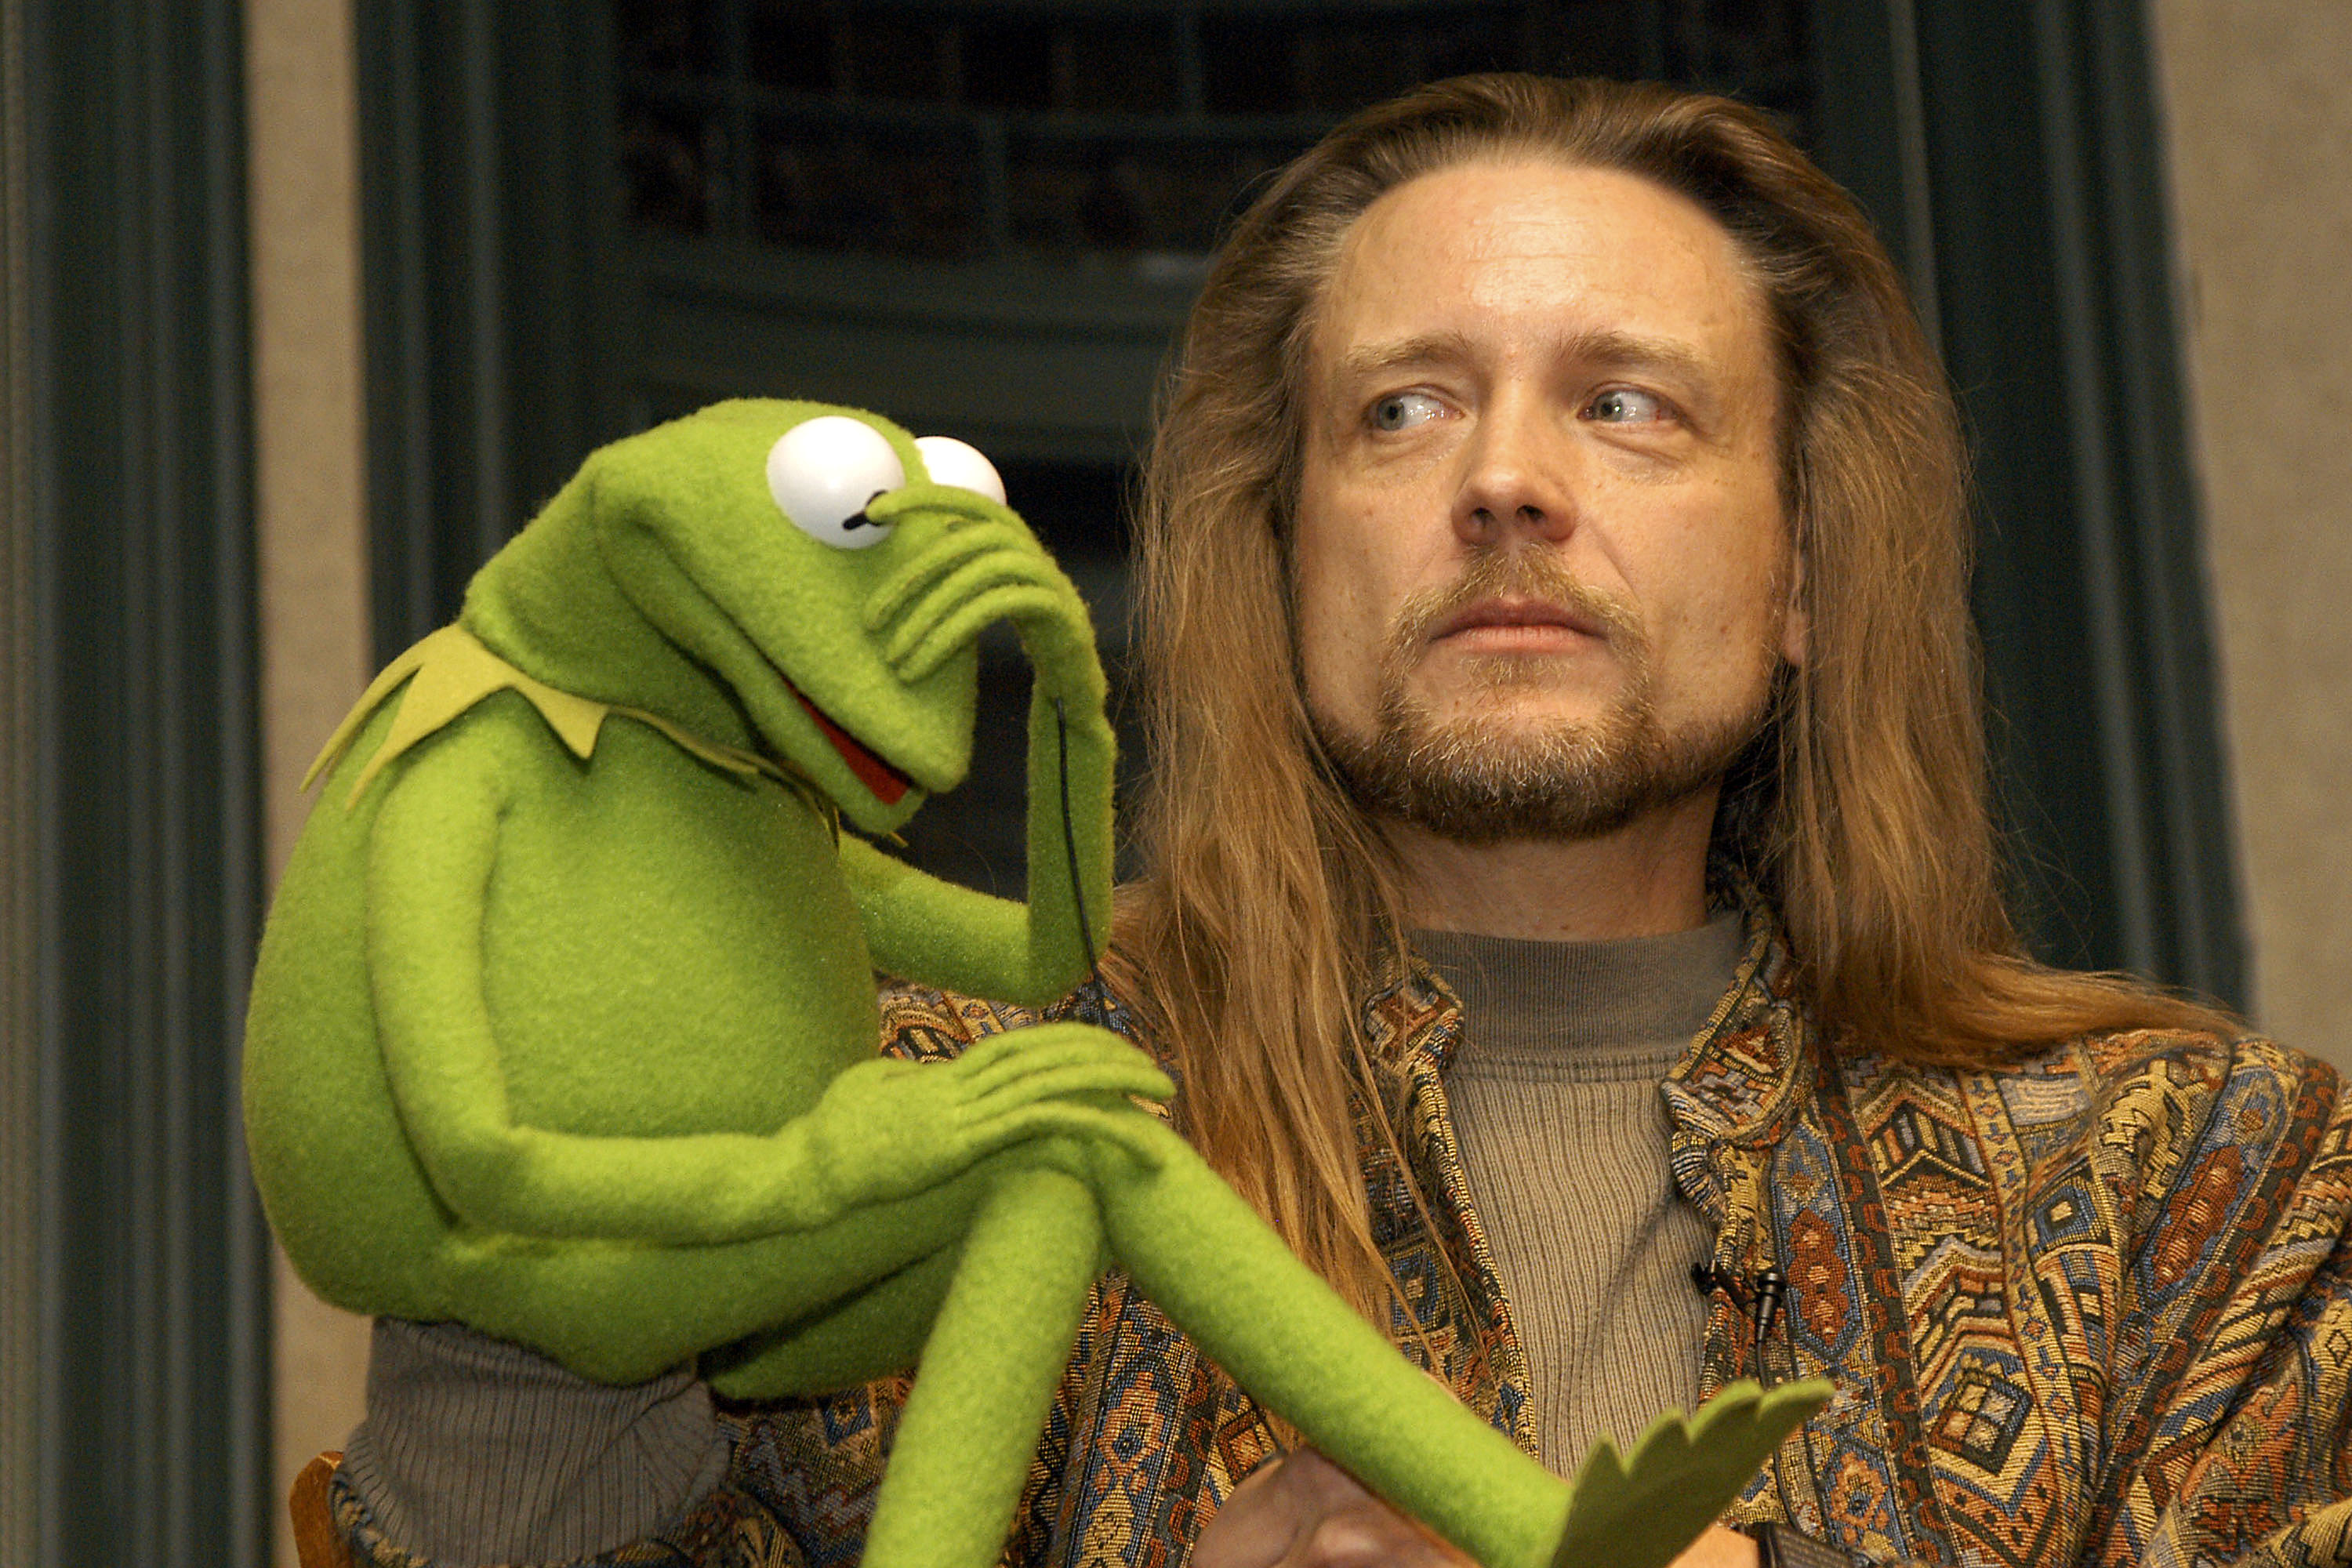 Muppet Kermit the Frog and his operator Steve Whitmire take questions from the audience November 14, 2003, at Barnes & Noble Union Square in New York City. -